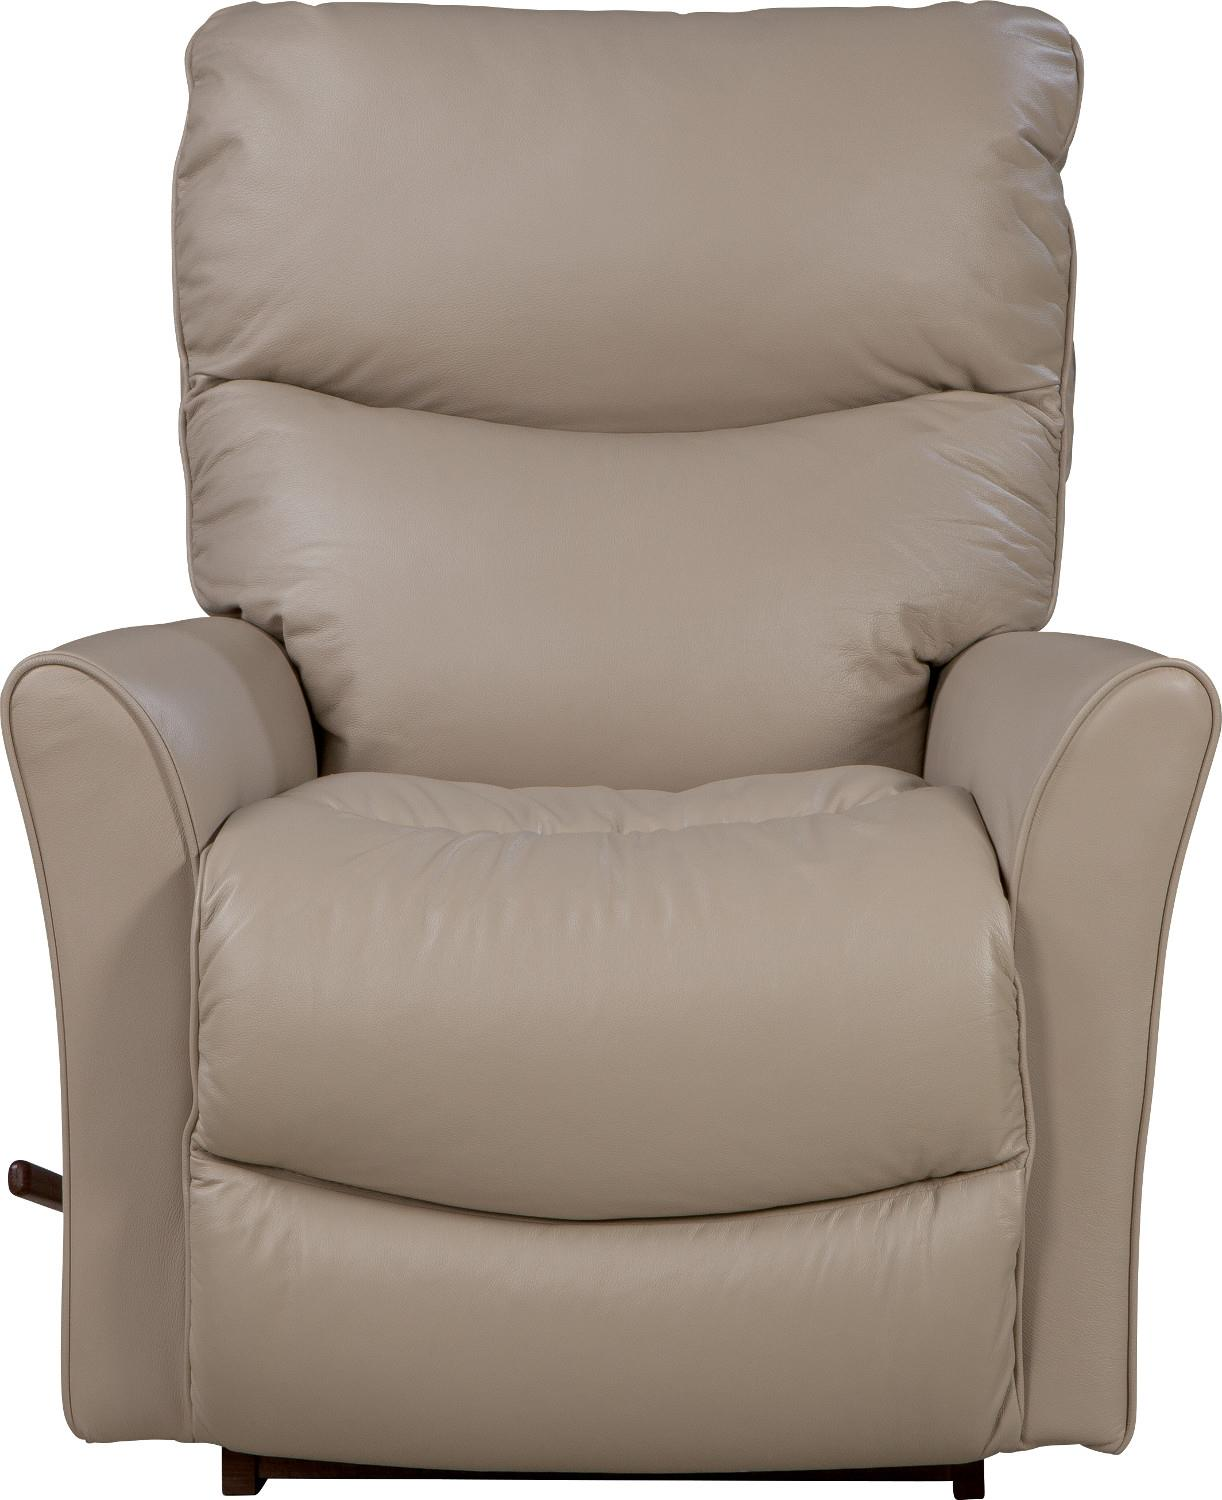 La-Z-Boy Rowan Leather Rocker Recliner - Item Number 010-765  sc 1 st  Great American Home Store & La-Z-Boy Rowan Leather Rocker Recliner - Great American Home Store ... islam-shia.org